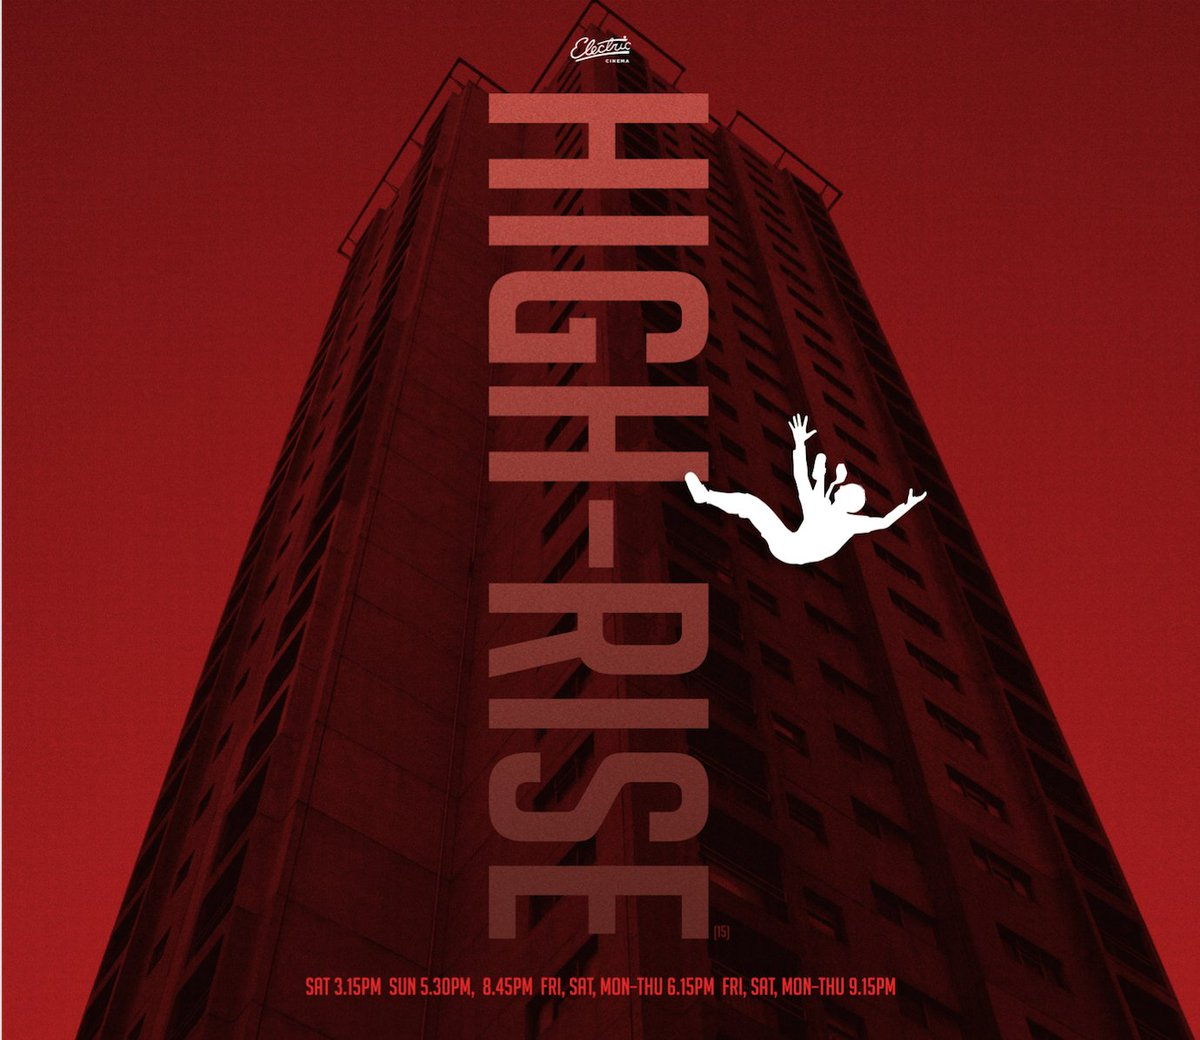 We have some very special guests dropping by to introduce @HighRise_movie tomorrow... https://t.co/cLAUZLkuU0 https://t.co/PLifBehIdg